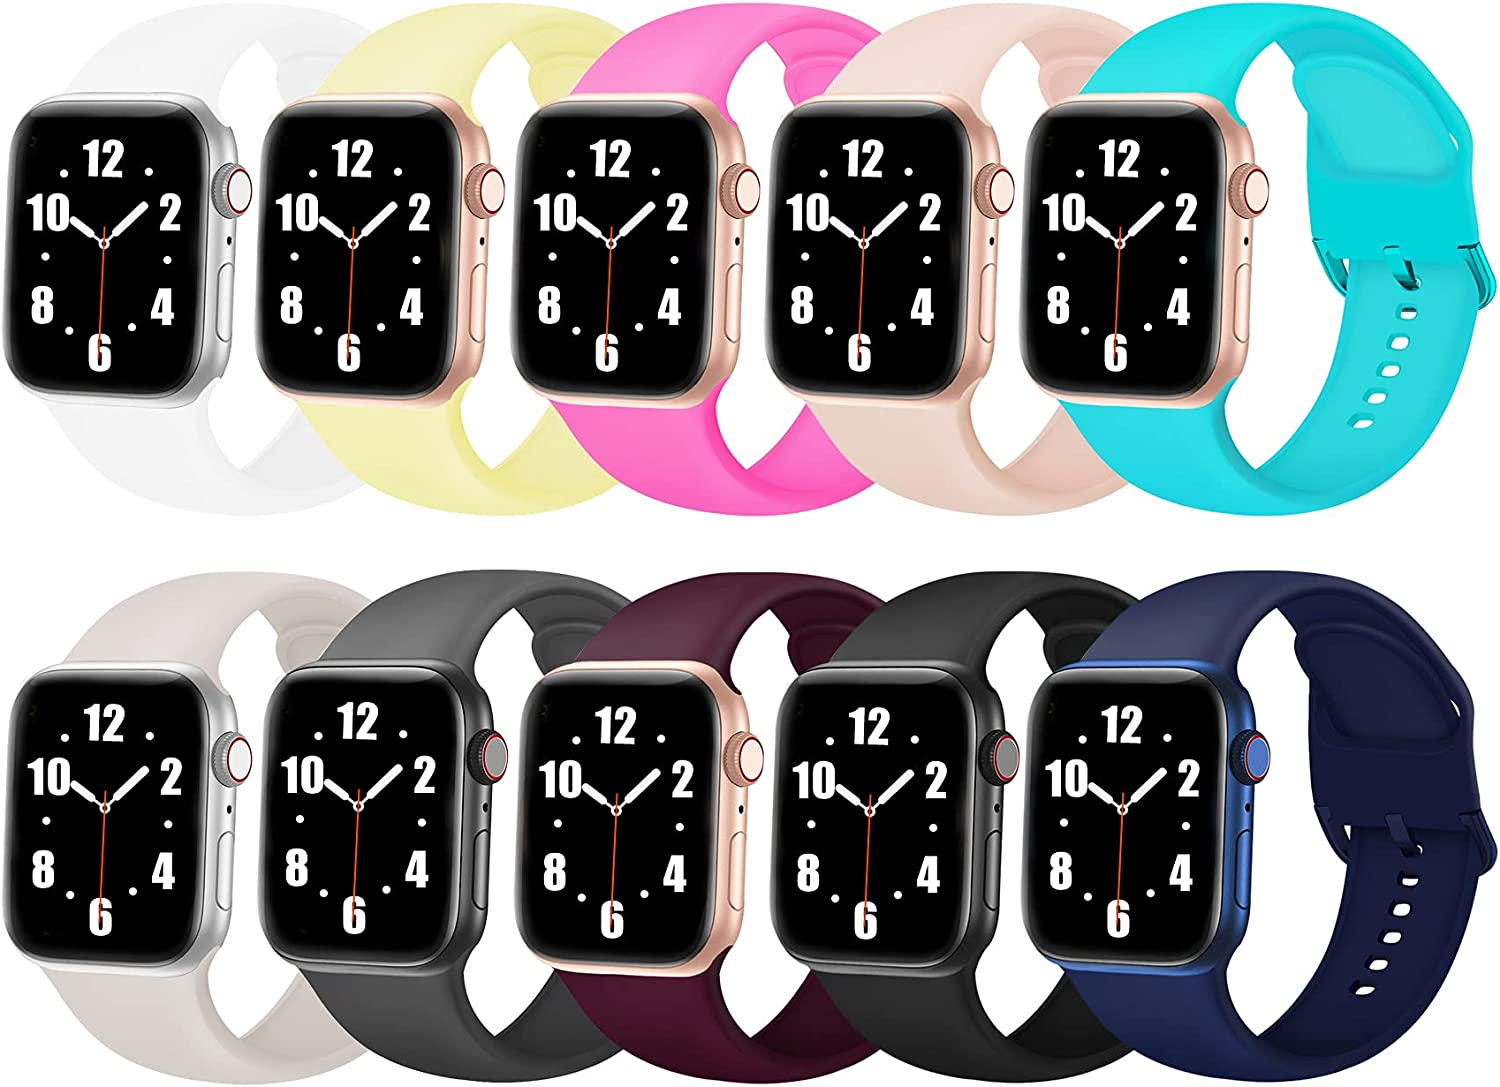 10 pack band Compatible with Apple Watch Bands 38mm 40mm 42mm 44mm, Soft Silicone Sport Replacement Strap with Custom Color Clasp for Women Men for iWatch Band Series 6 5 4 3 2 1 SE, 38mm/40mm